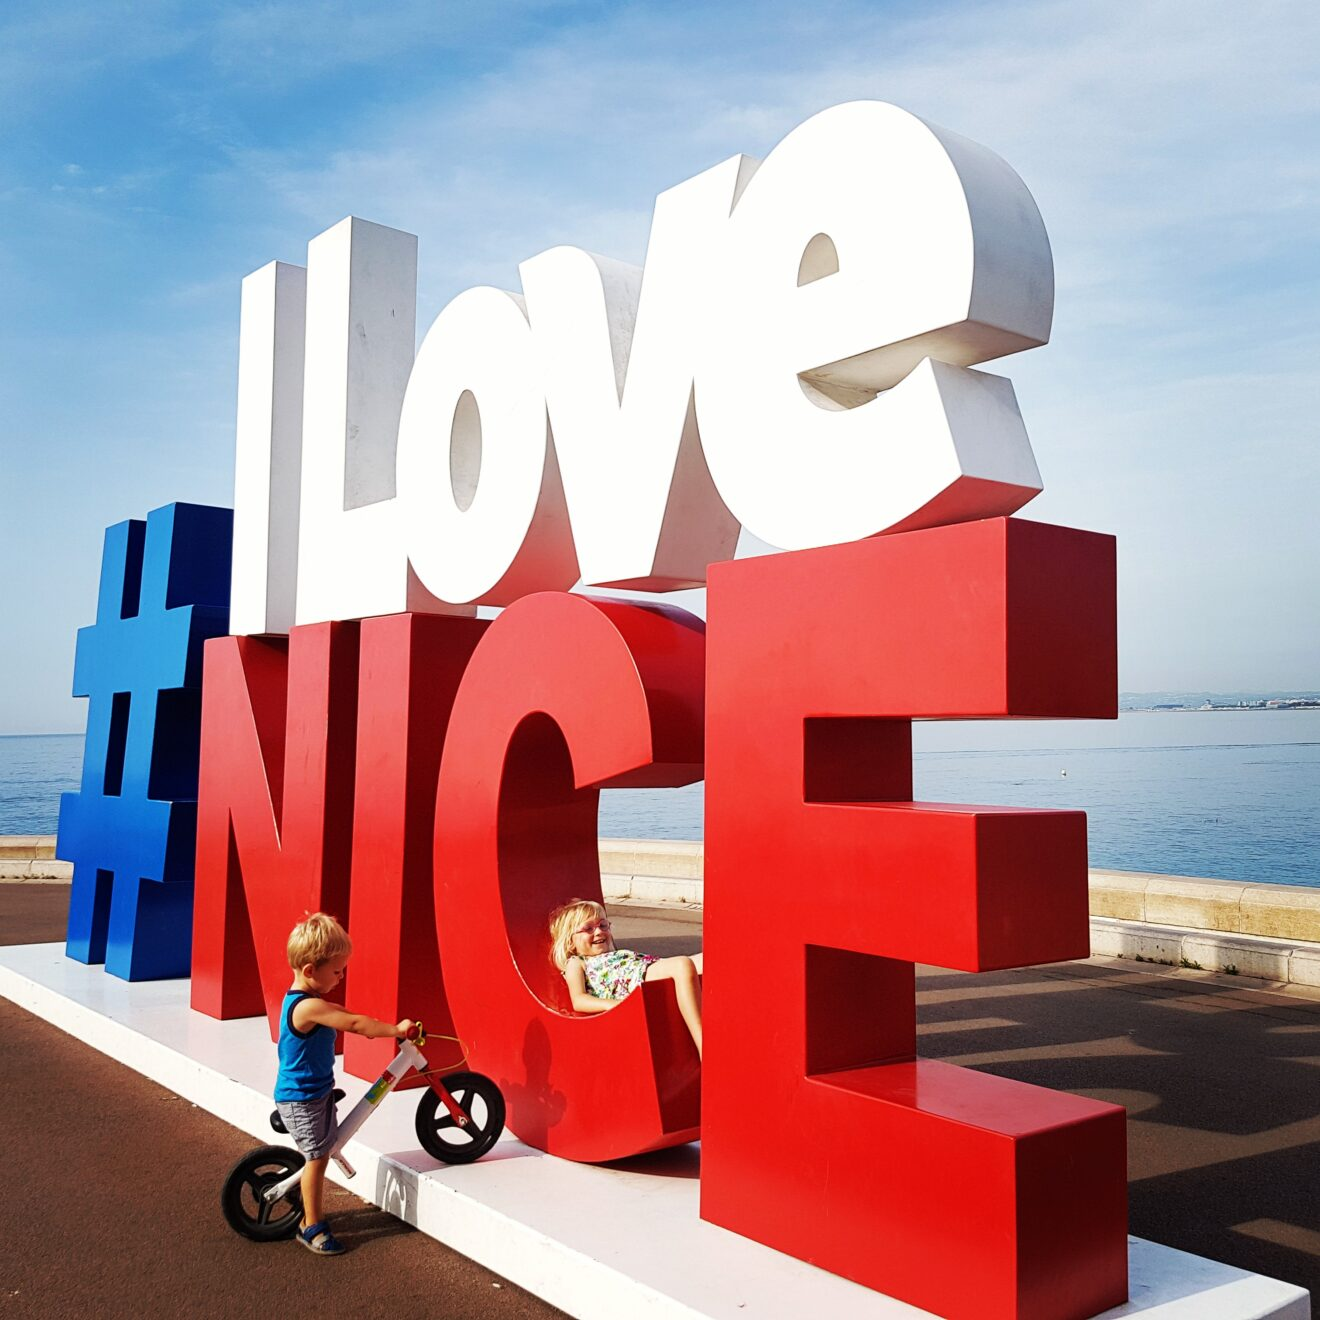 I_love_Nice_by_Stephane_Belgrand_Rousson